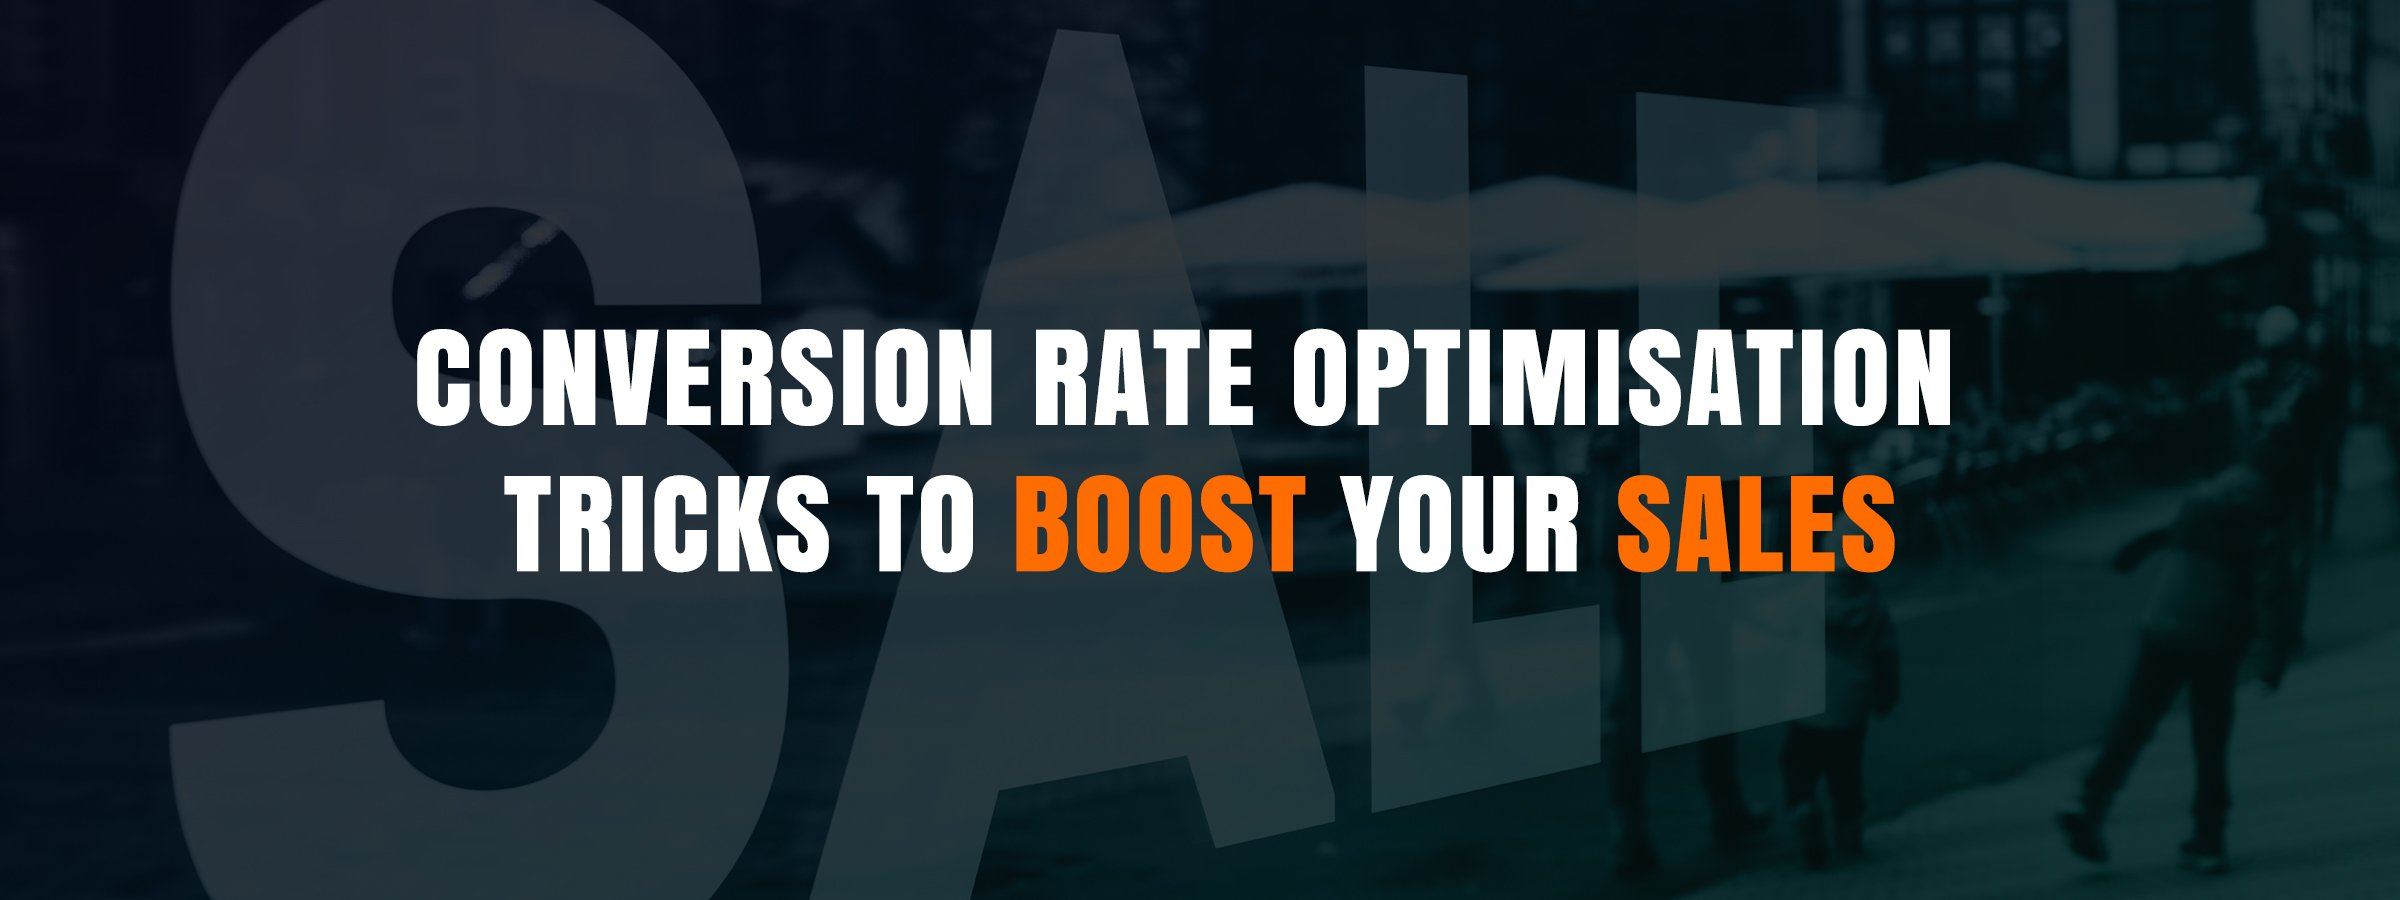 Conversion_Rate_Optimisation_Tric_s_To_Boost_Your_Sales